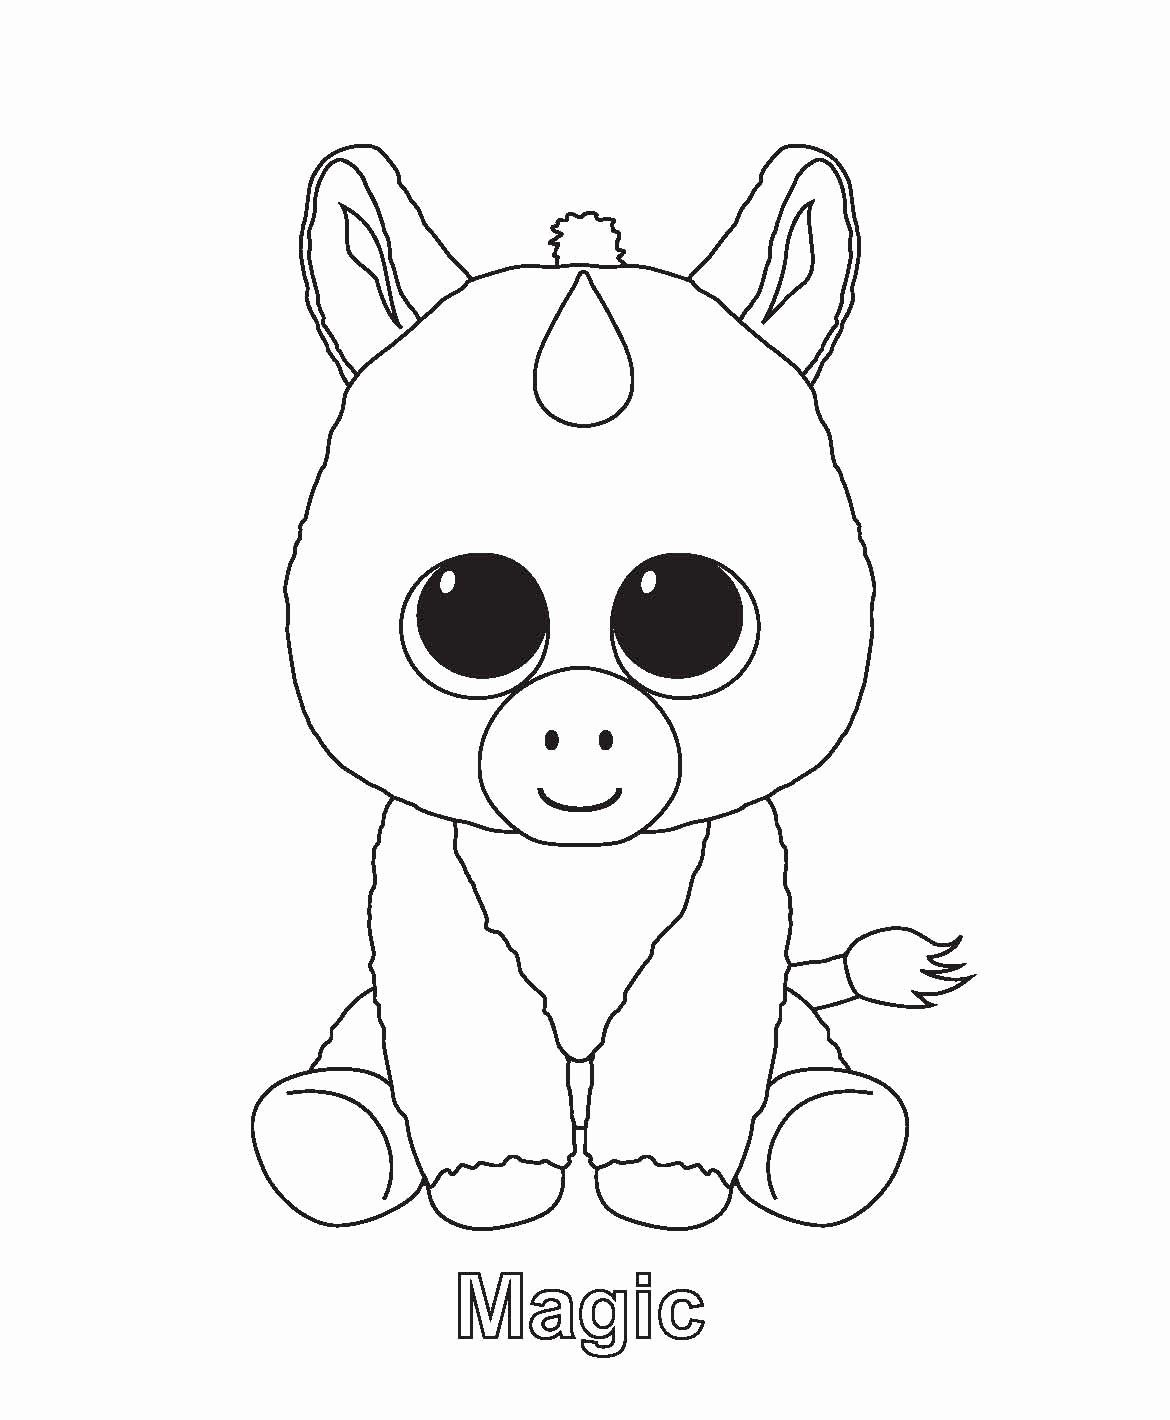 Jojo Siwa Coloring Page New Coloring Pages Jojo Siwaoloring Pages Gallery For Page Cartoon Coloring Pages Baby Unicorn Cute Coloring Pages